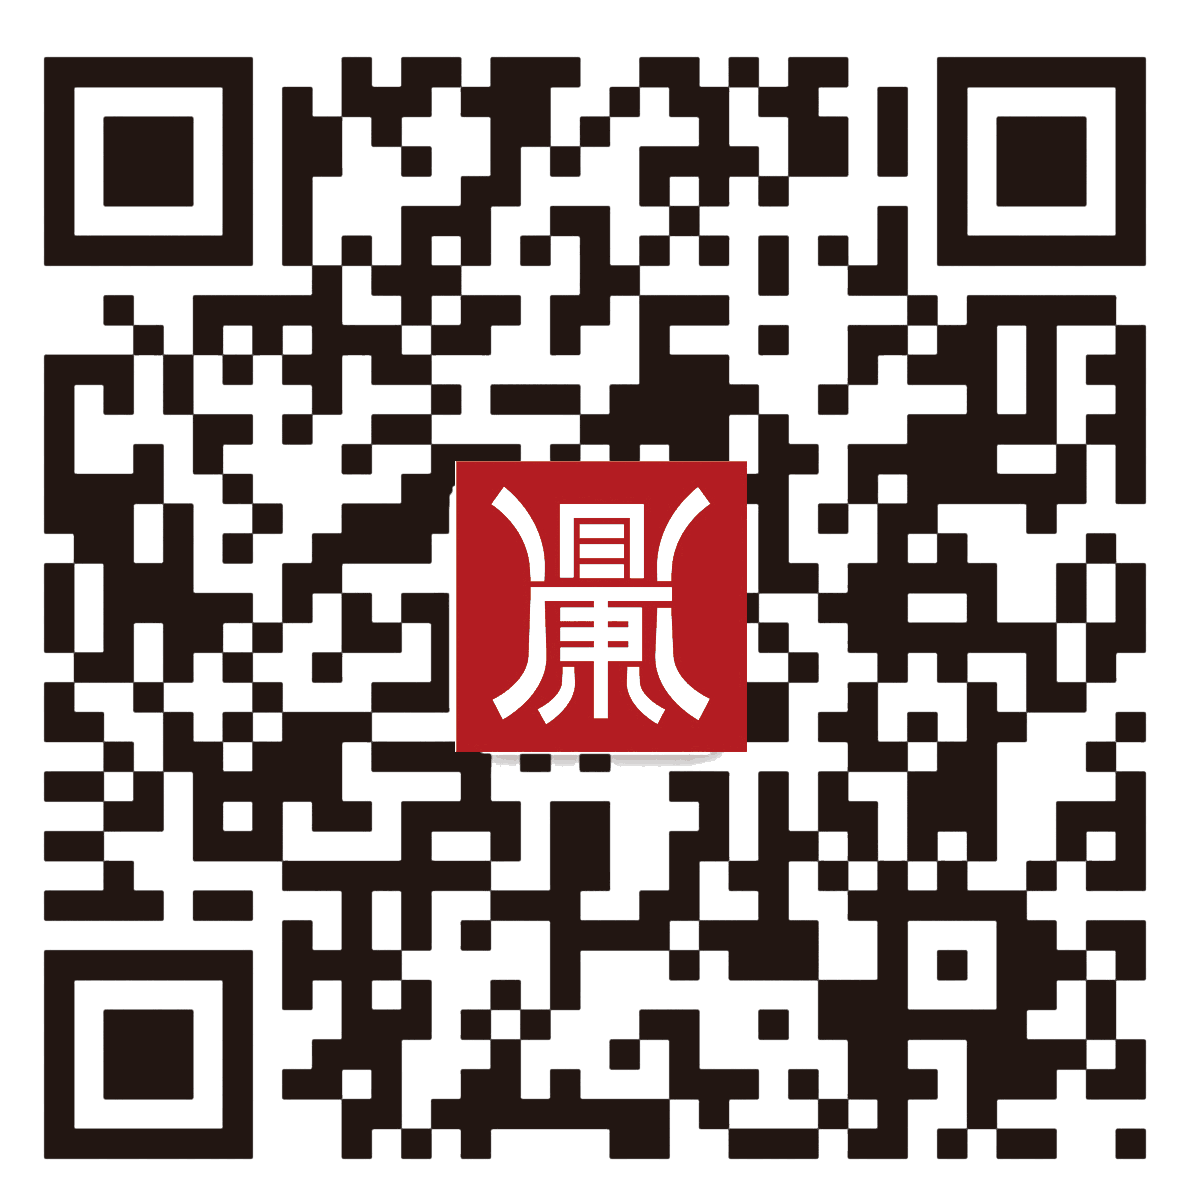 Scanning focuses on our WeChat platform